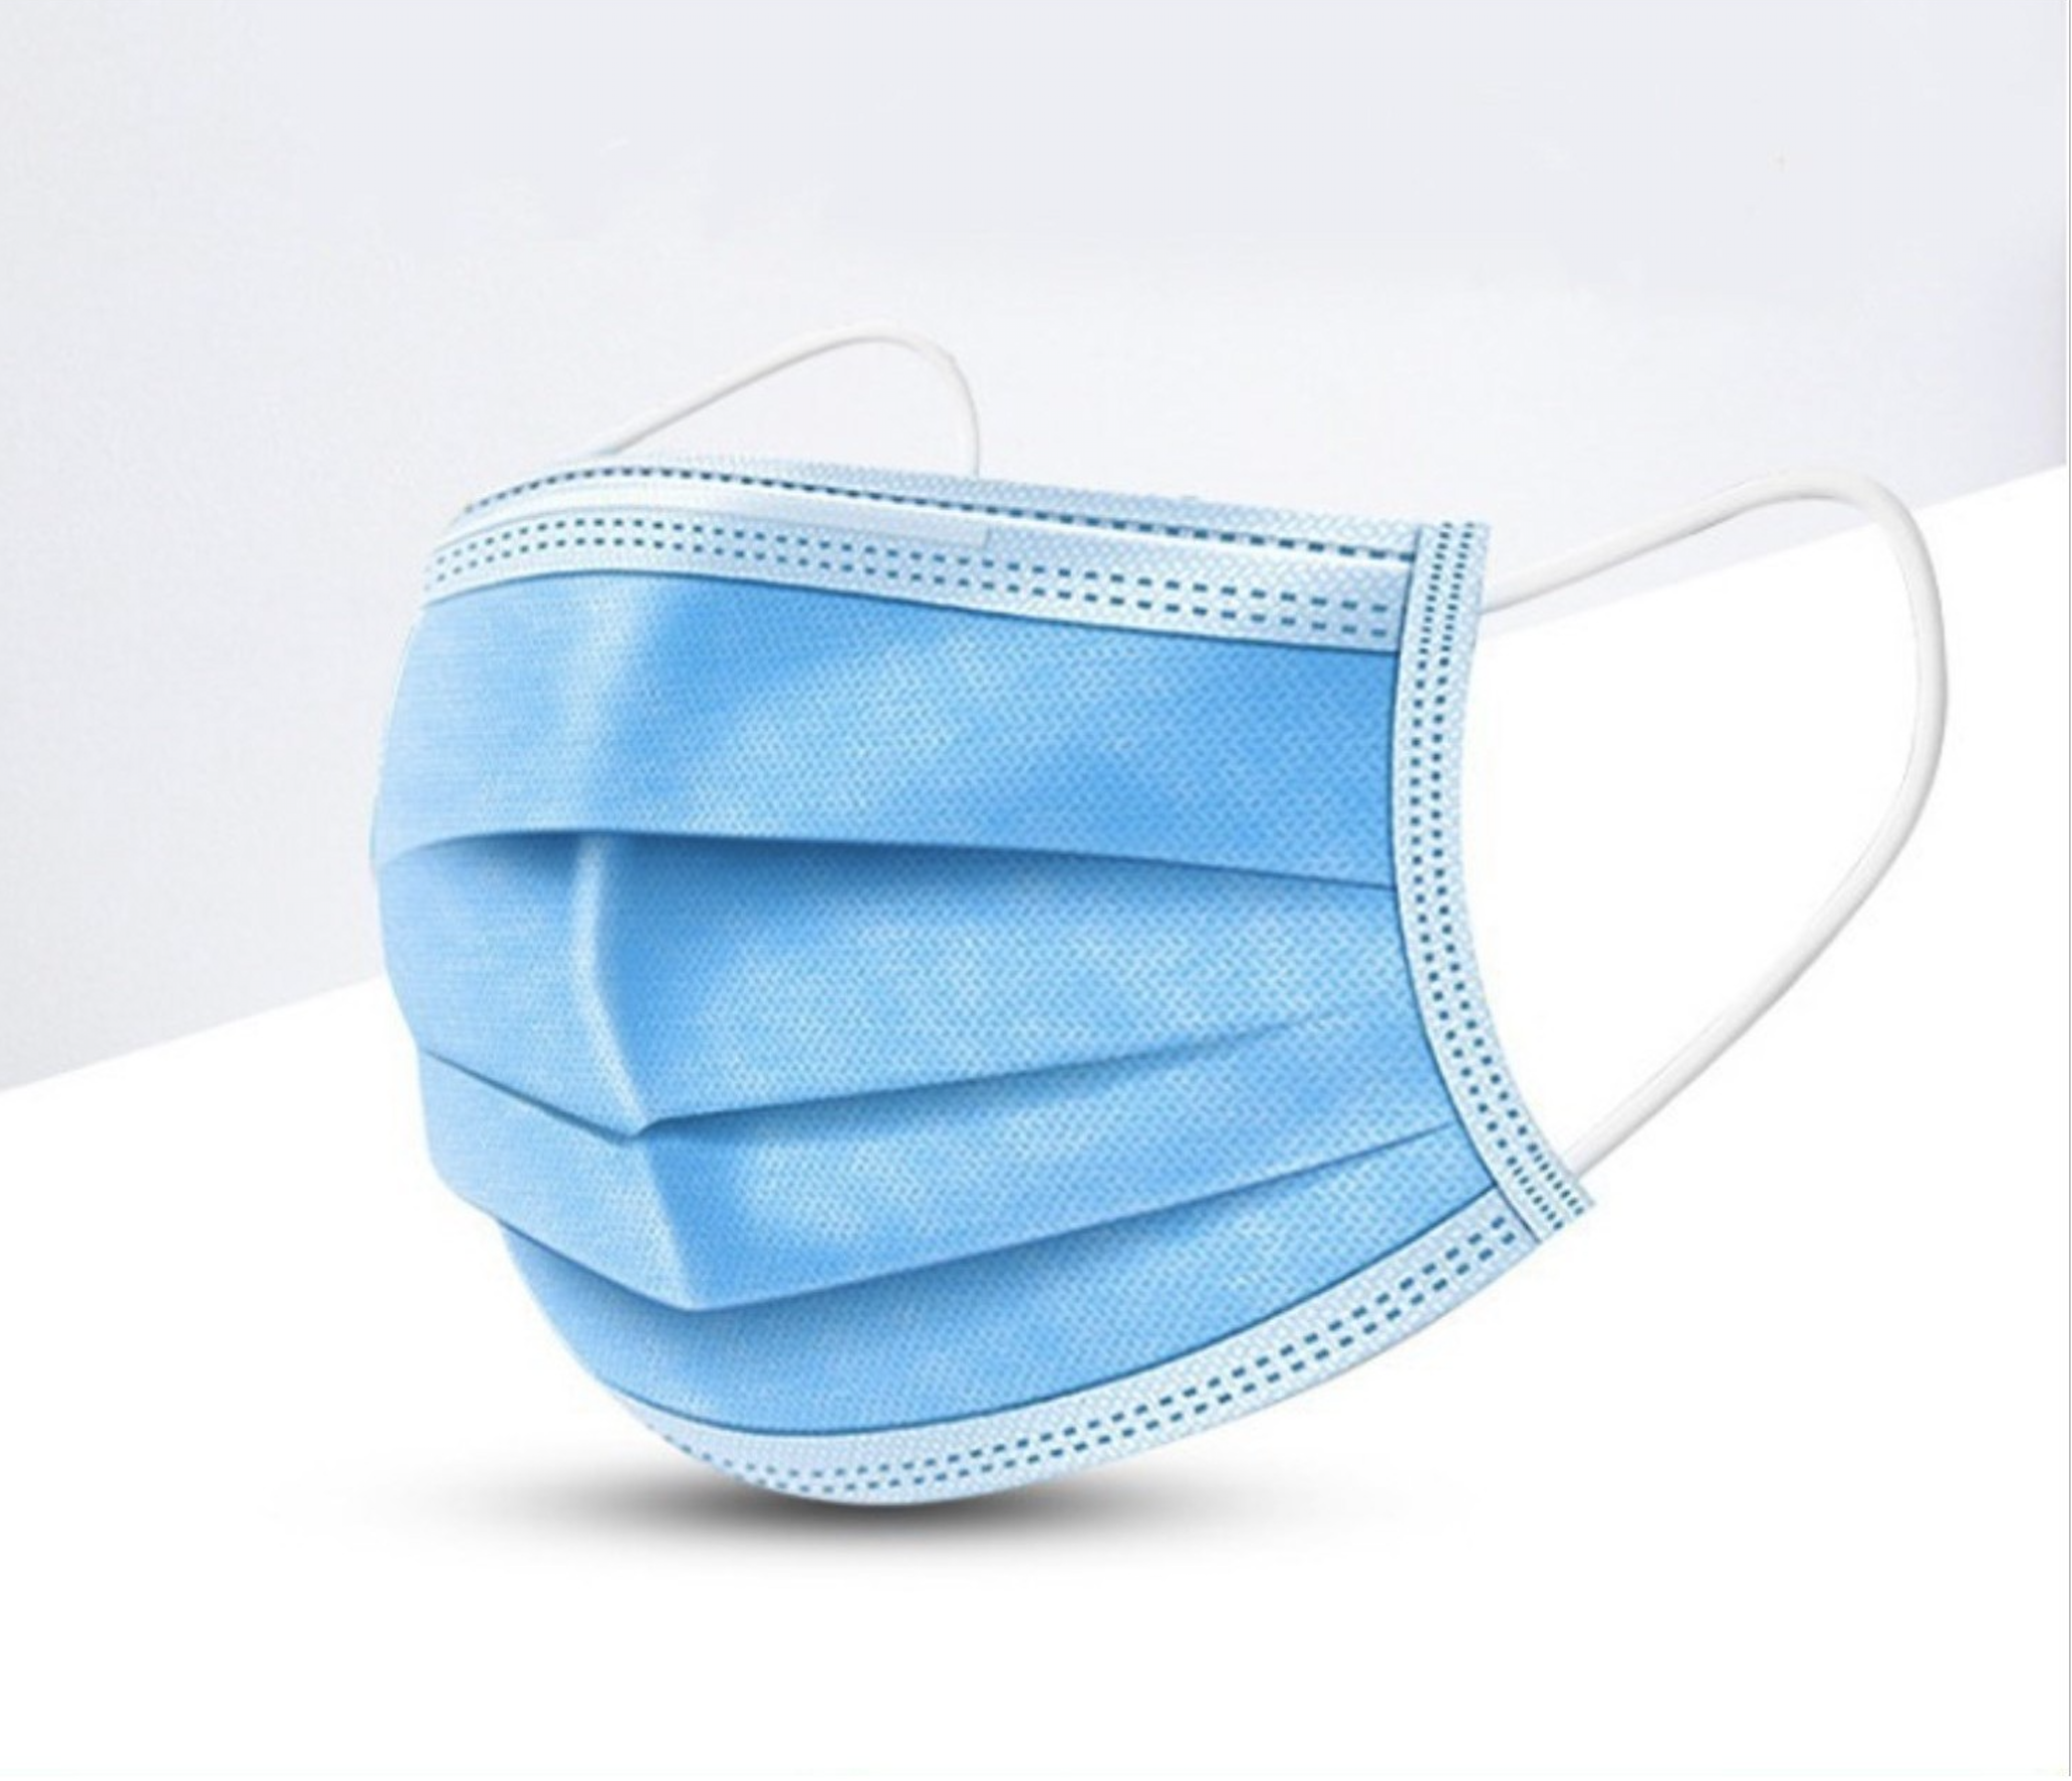 FDA-approved disposable surgical masks